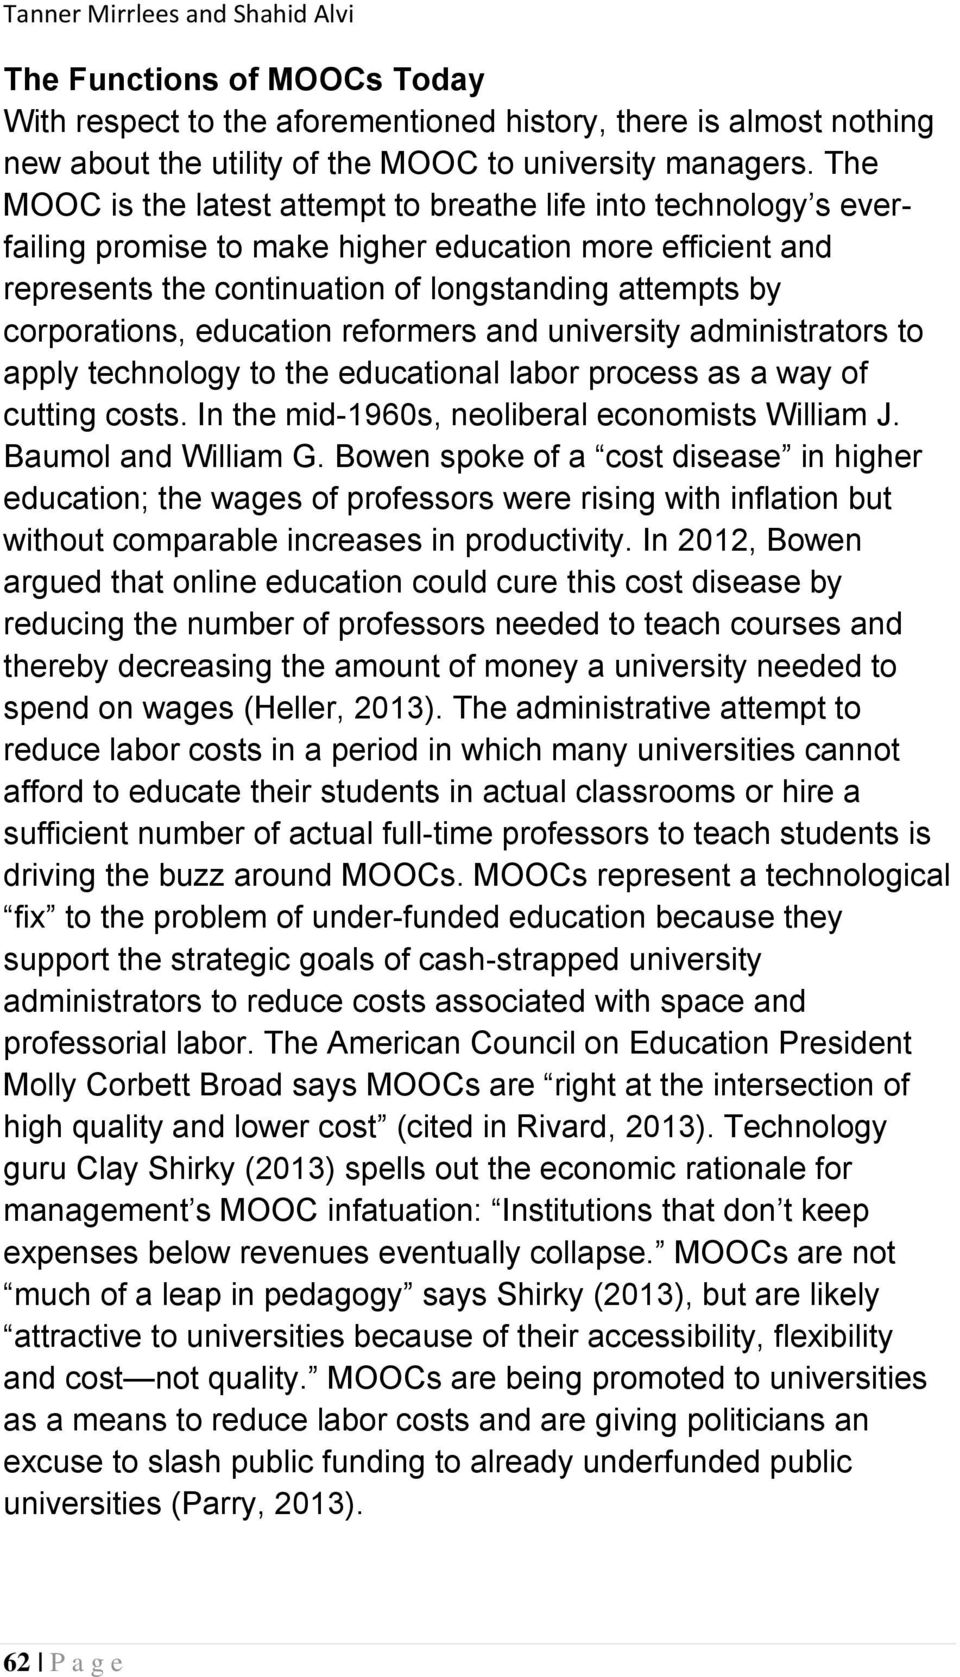 education reformers and university administrators to apply technology to the educational labor process as a way of cutting costs. In the mid-1960s, neoliberal economists William J.